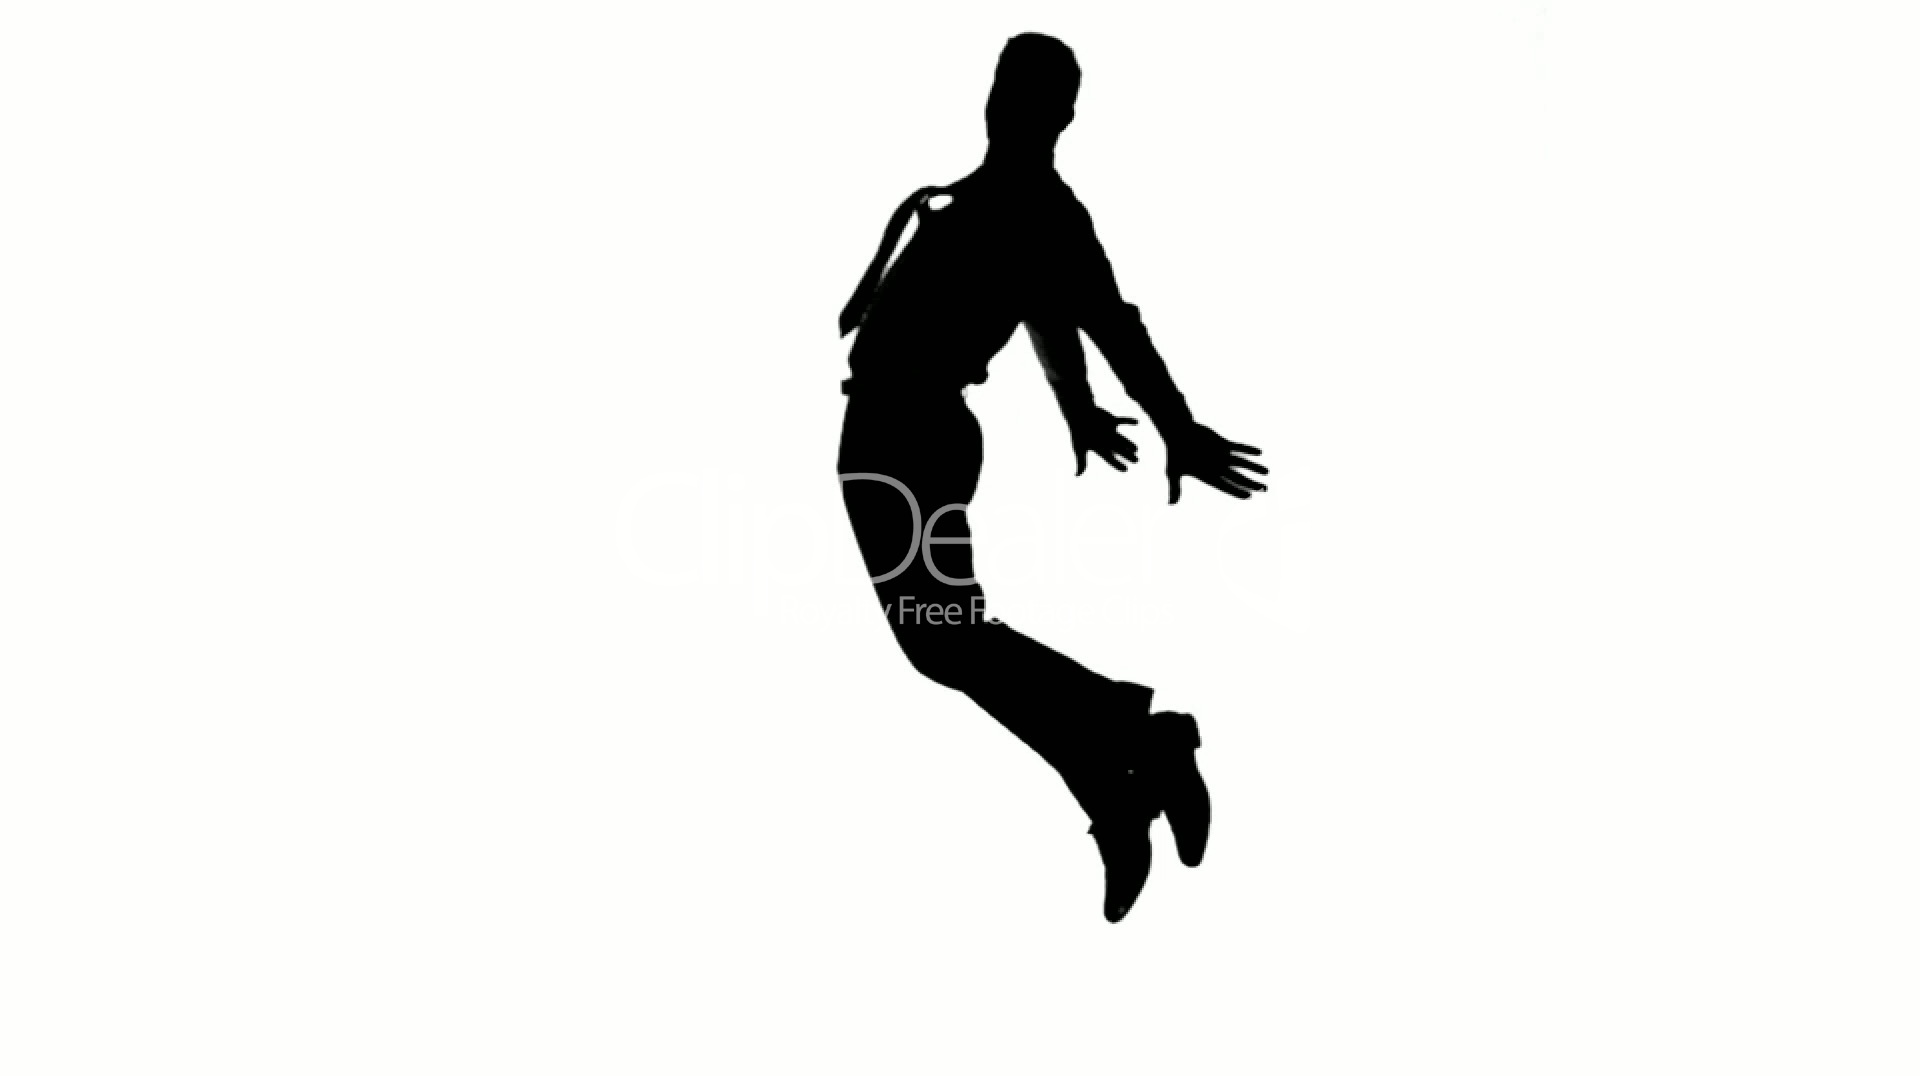 1920x1080 Silhouette Of Man With A Tie Jumping On White Background Royalty